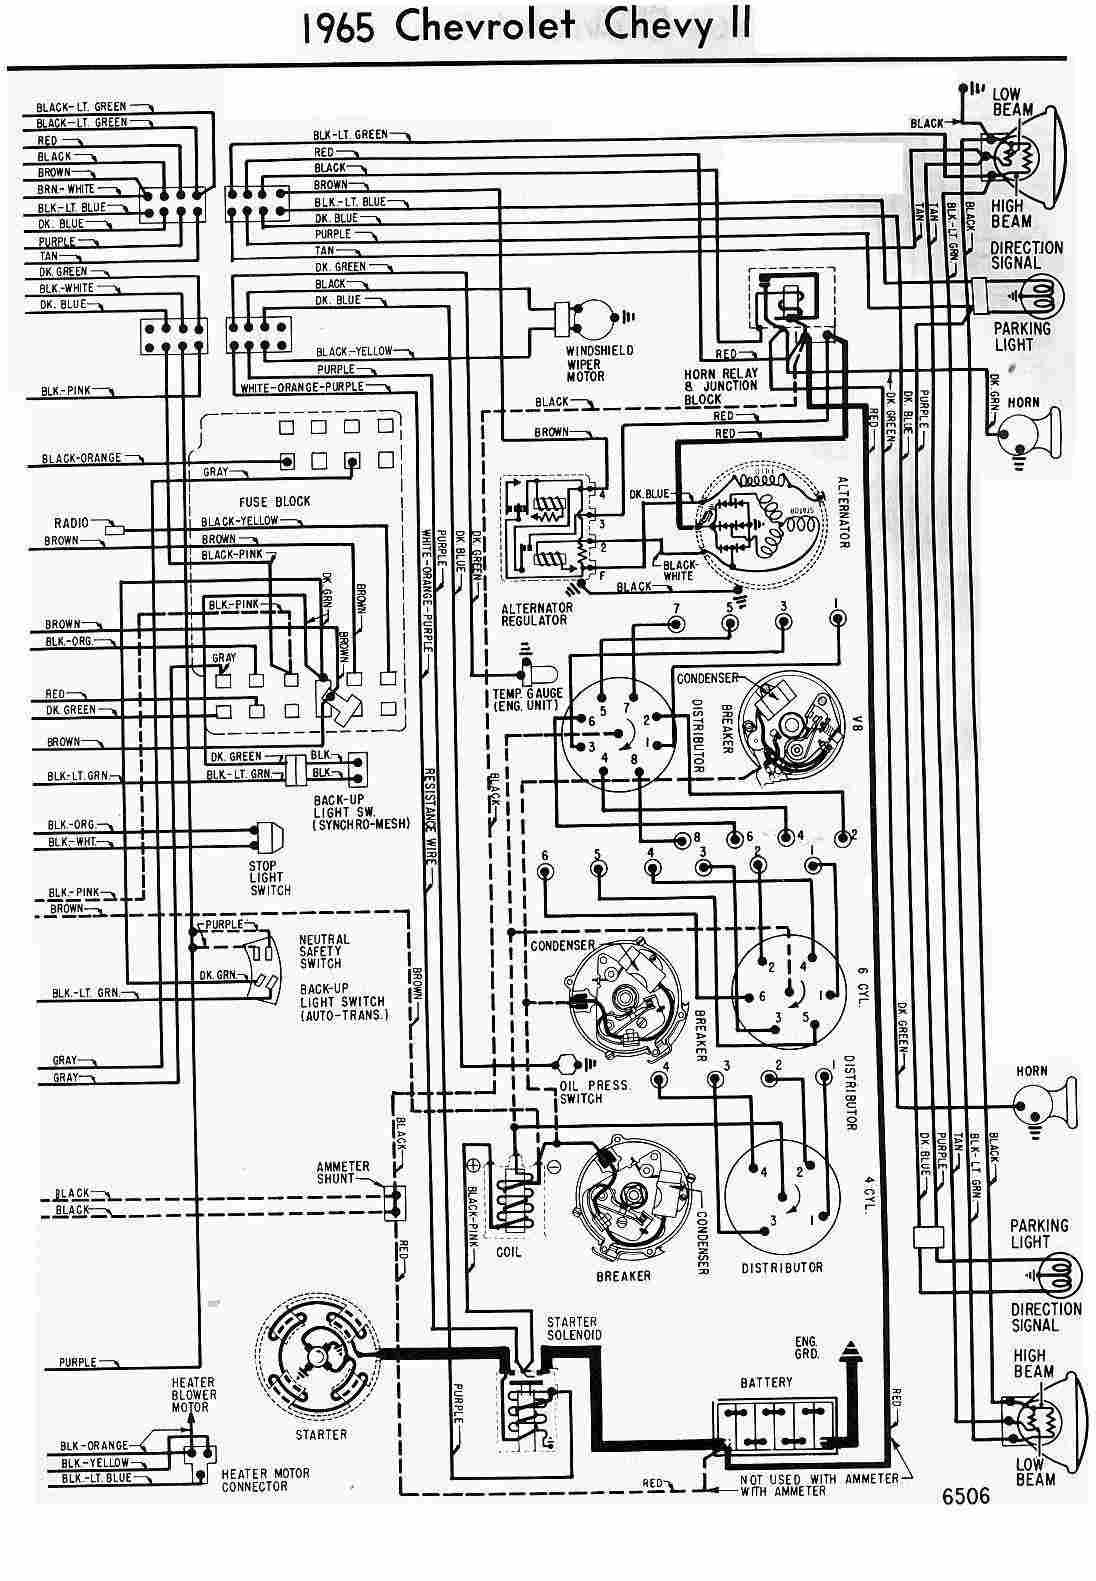 chevrolet car manuals, wiring diagrams pdf & fault codes truck wiring diagrams chevrolet wiring diagrams download